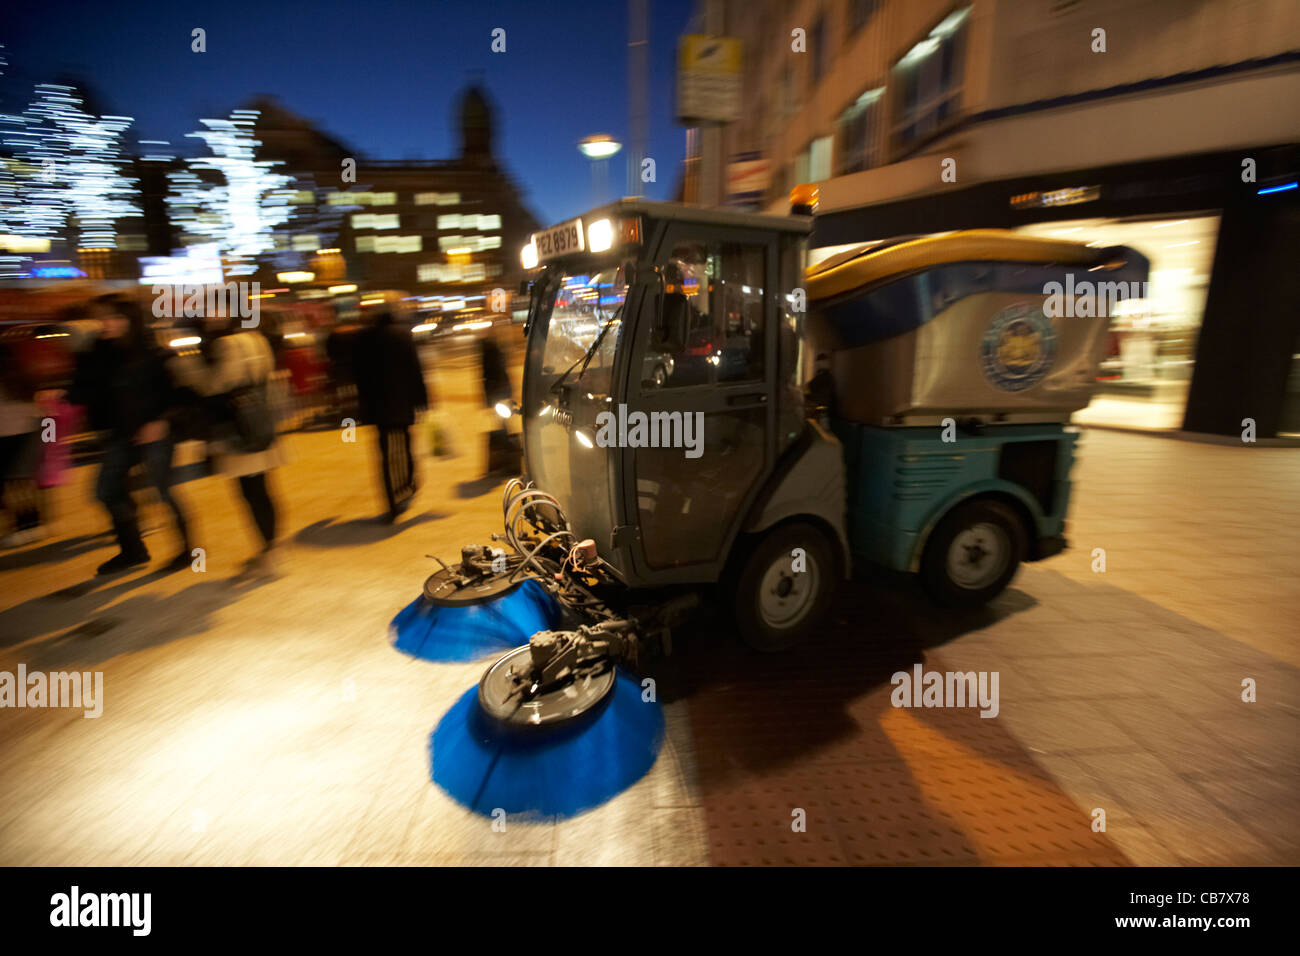 belfast city council street sweeper cleaning streets at night northern ireland uk deliberate panning motion blur Stock Photo